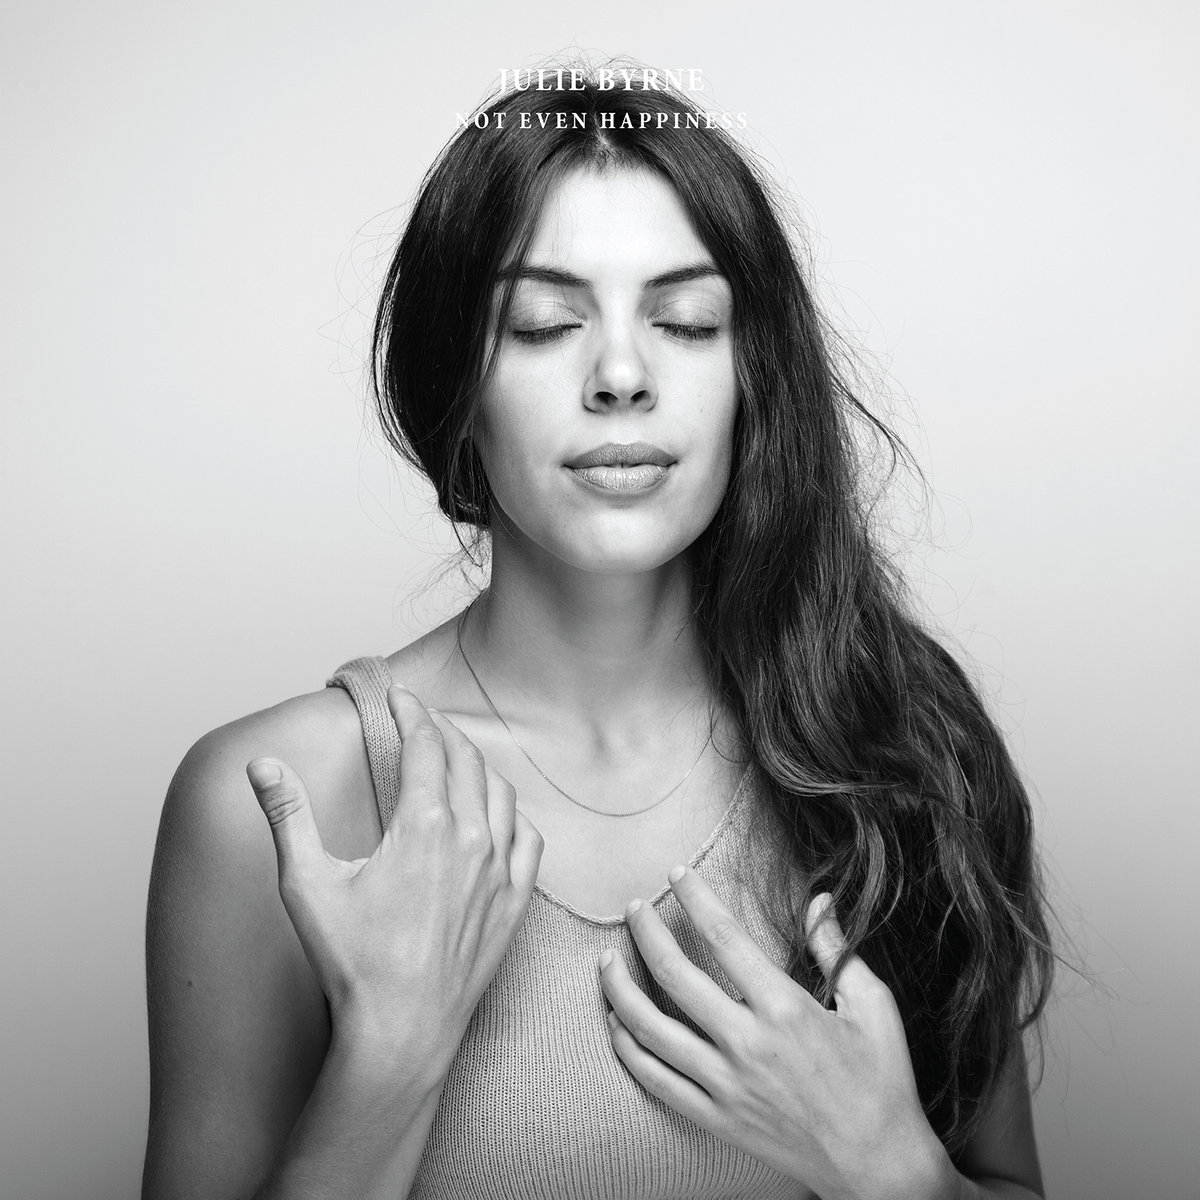 julie byrne not even happiness Top 50 Albums of 2017